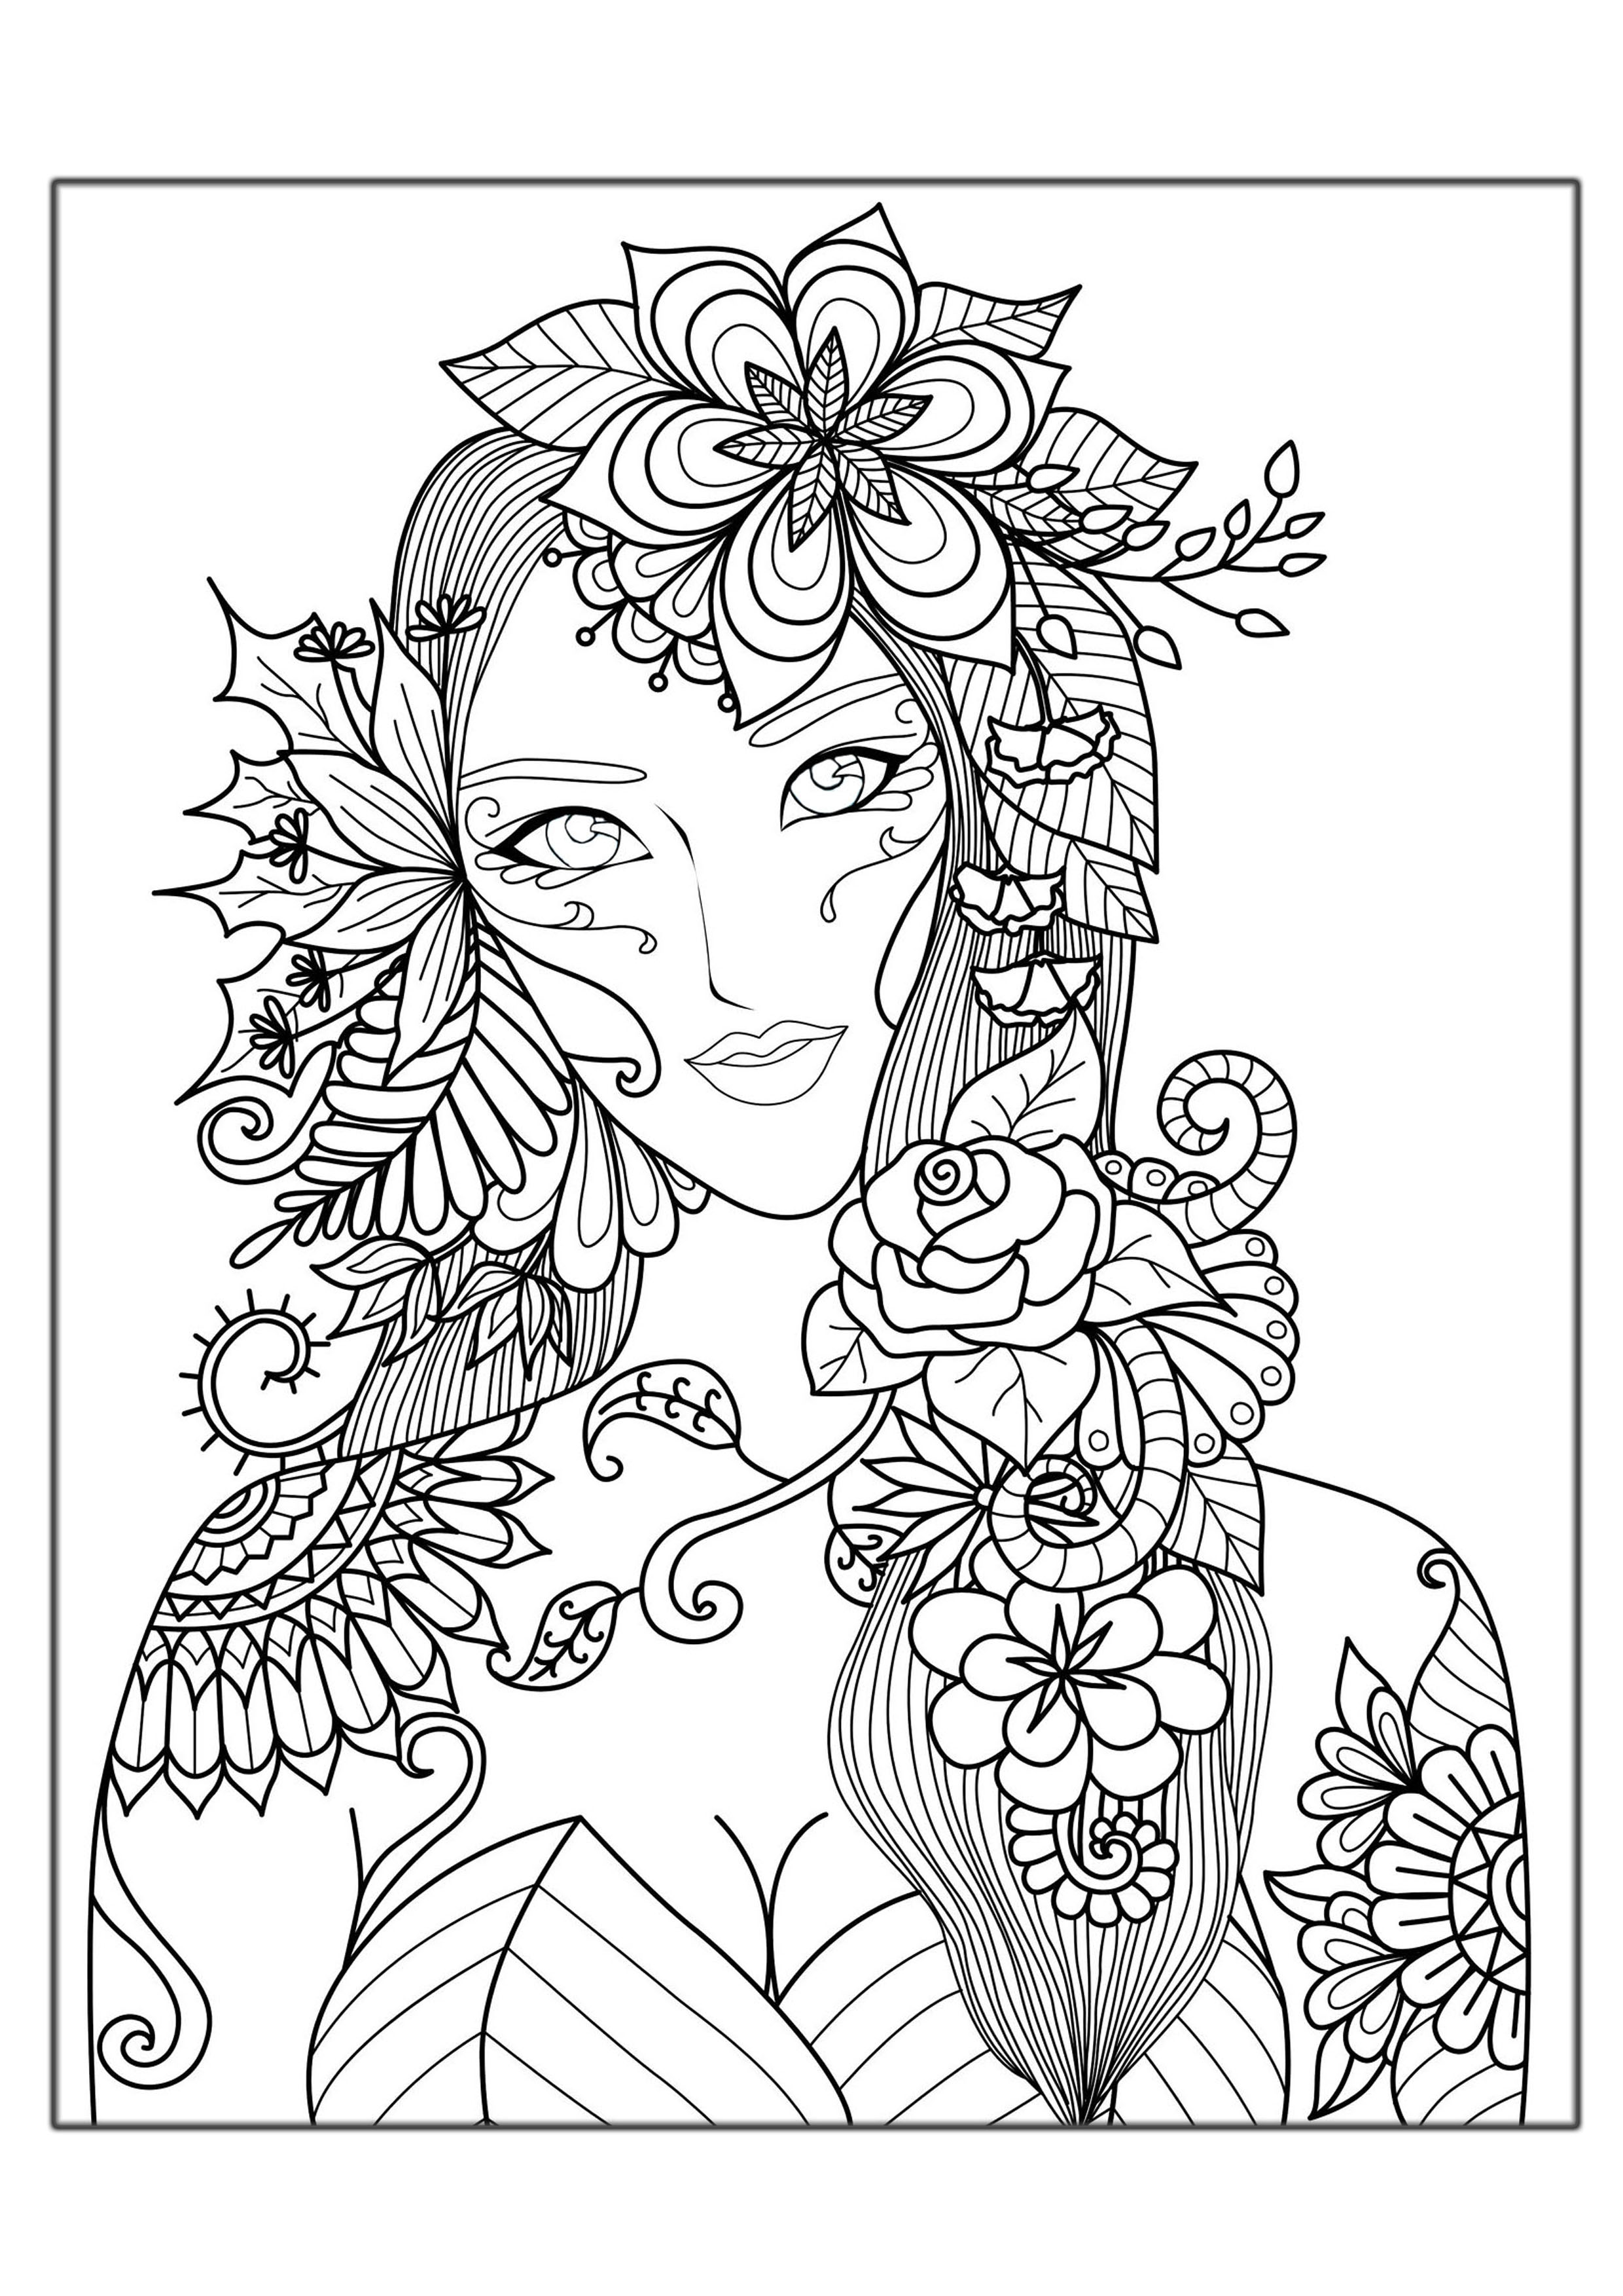 www coloring pages spring coloring pages 2018 dr odd www coloring pages